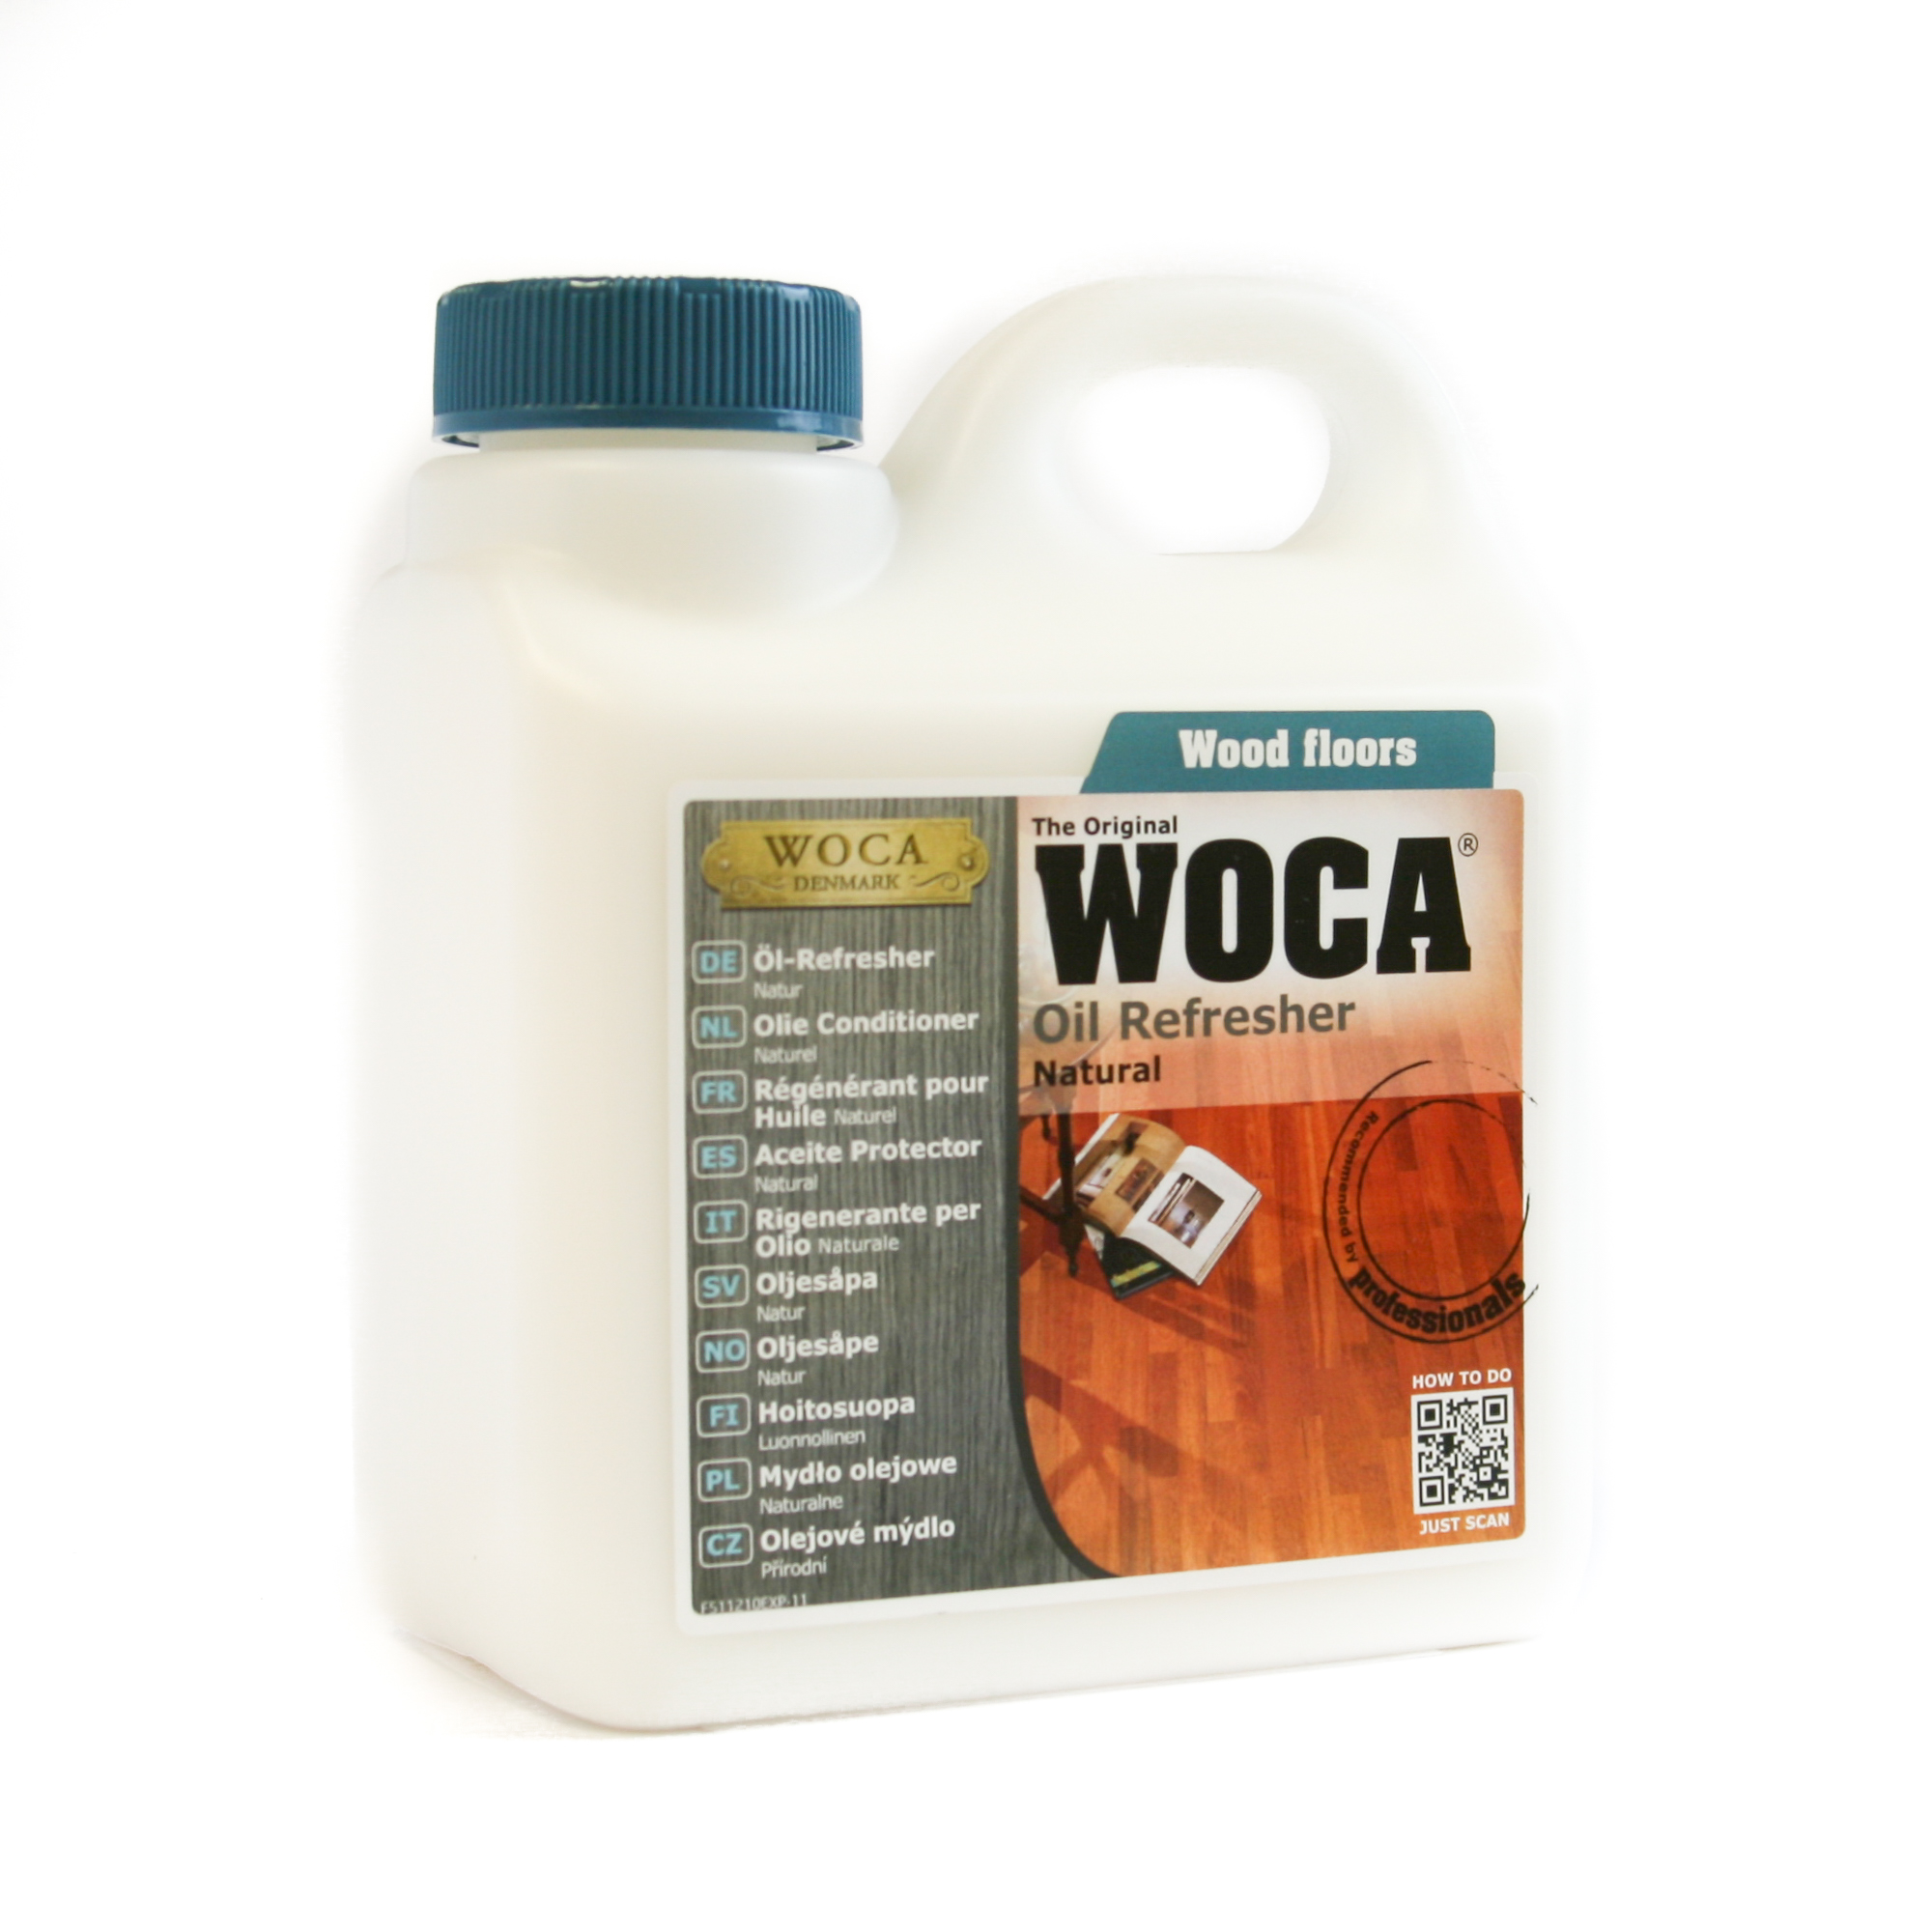 WOCA Oil Refresher Will Refresh Your Floor